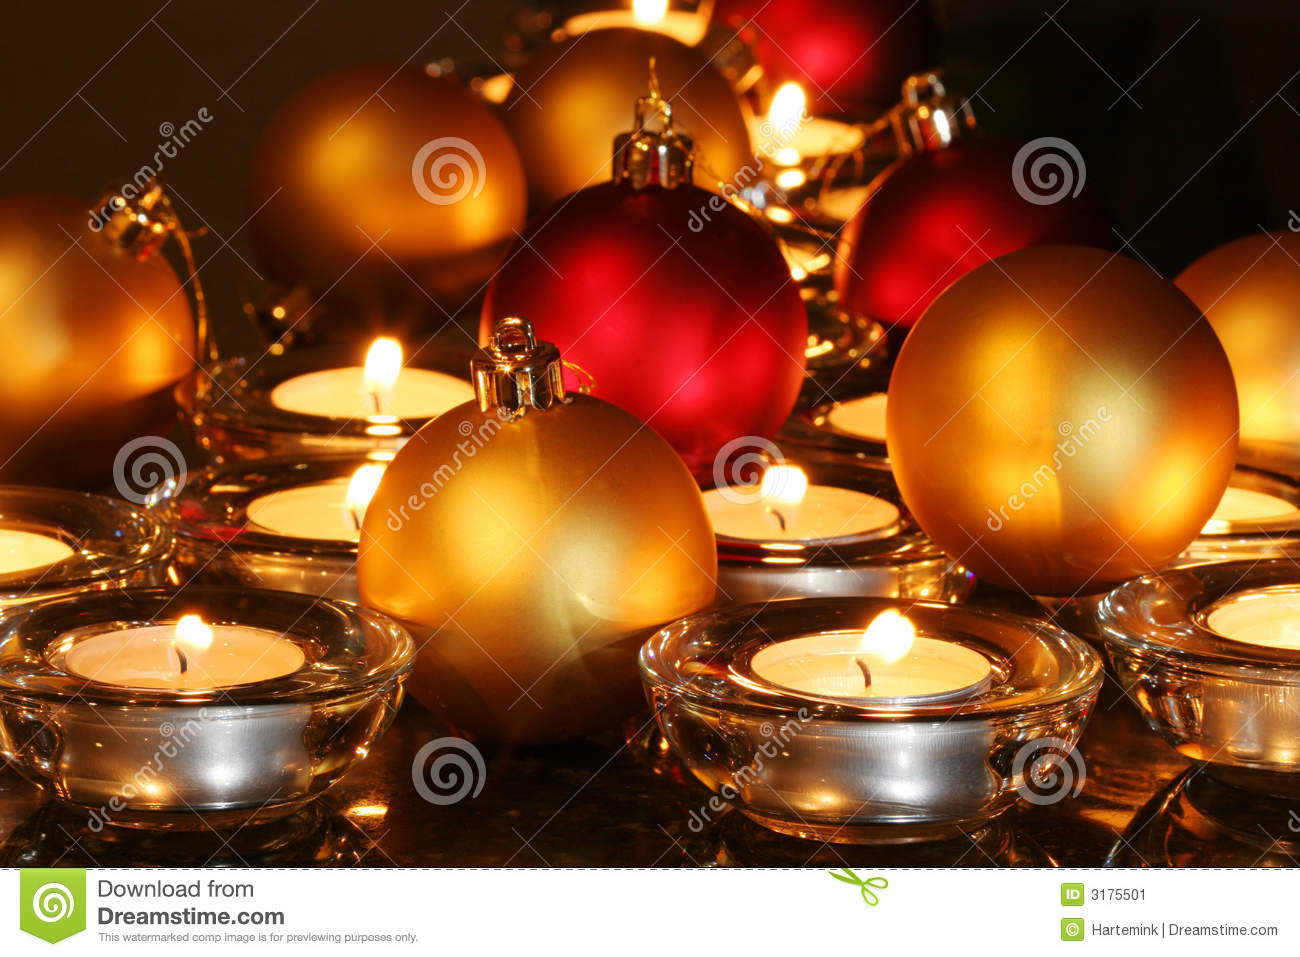 Christmas ornaments candles stock image image 3175501 for Christmas candles and ornaments